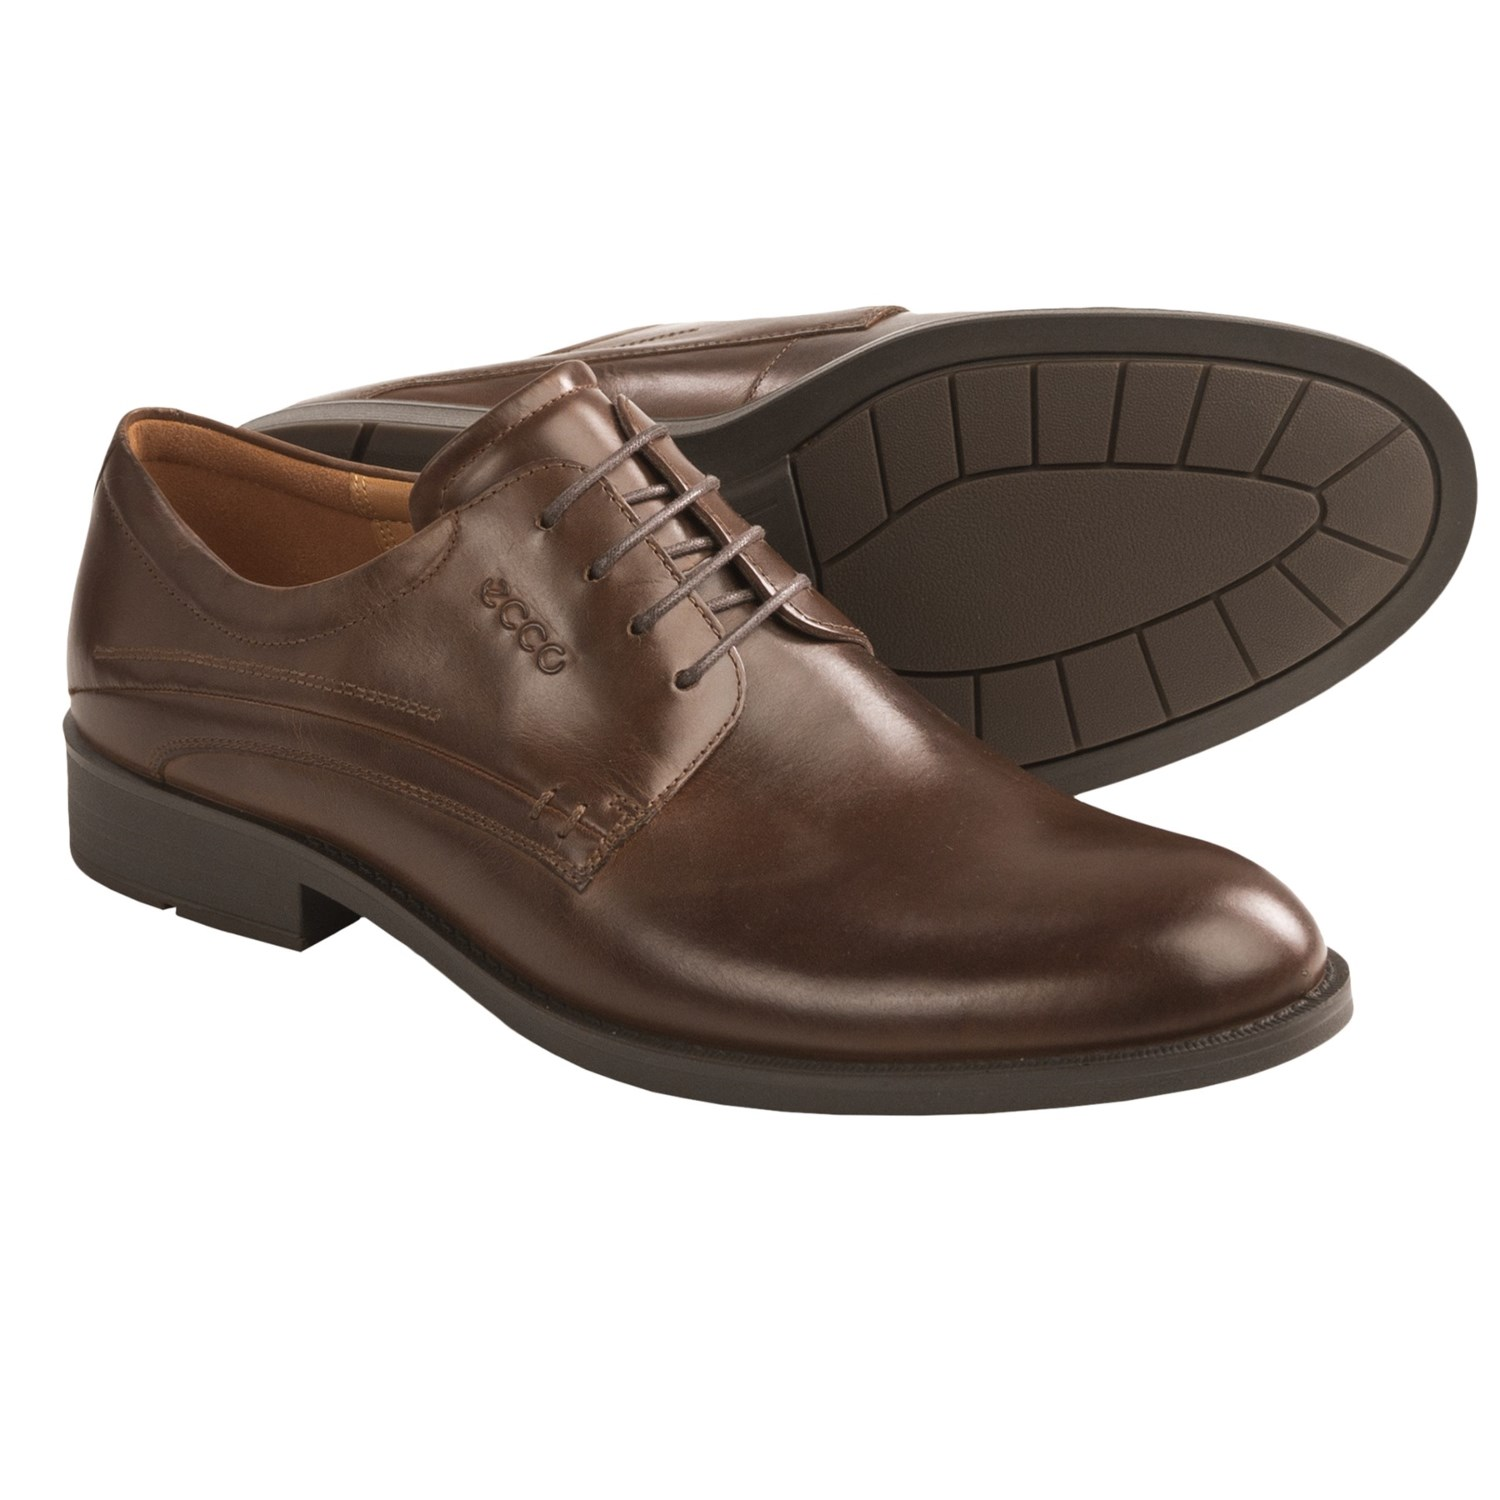 ECCO Birmingham Oxford Shoes - Leather (For Men) in Cocoa Brown